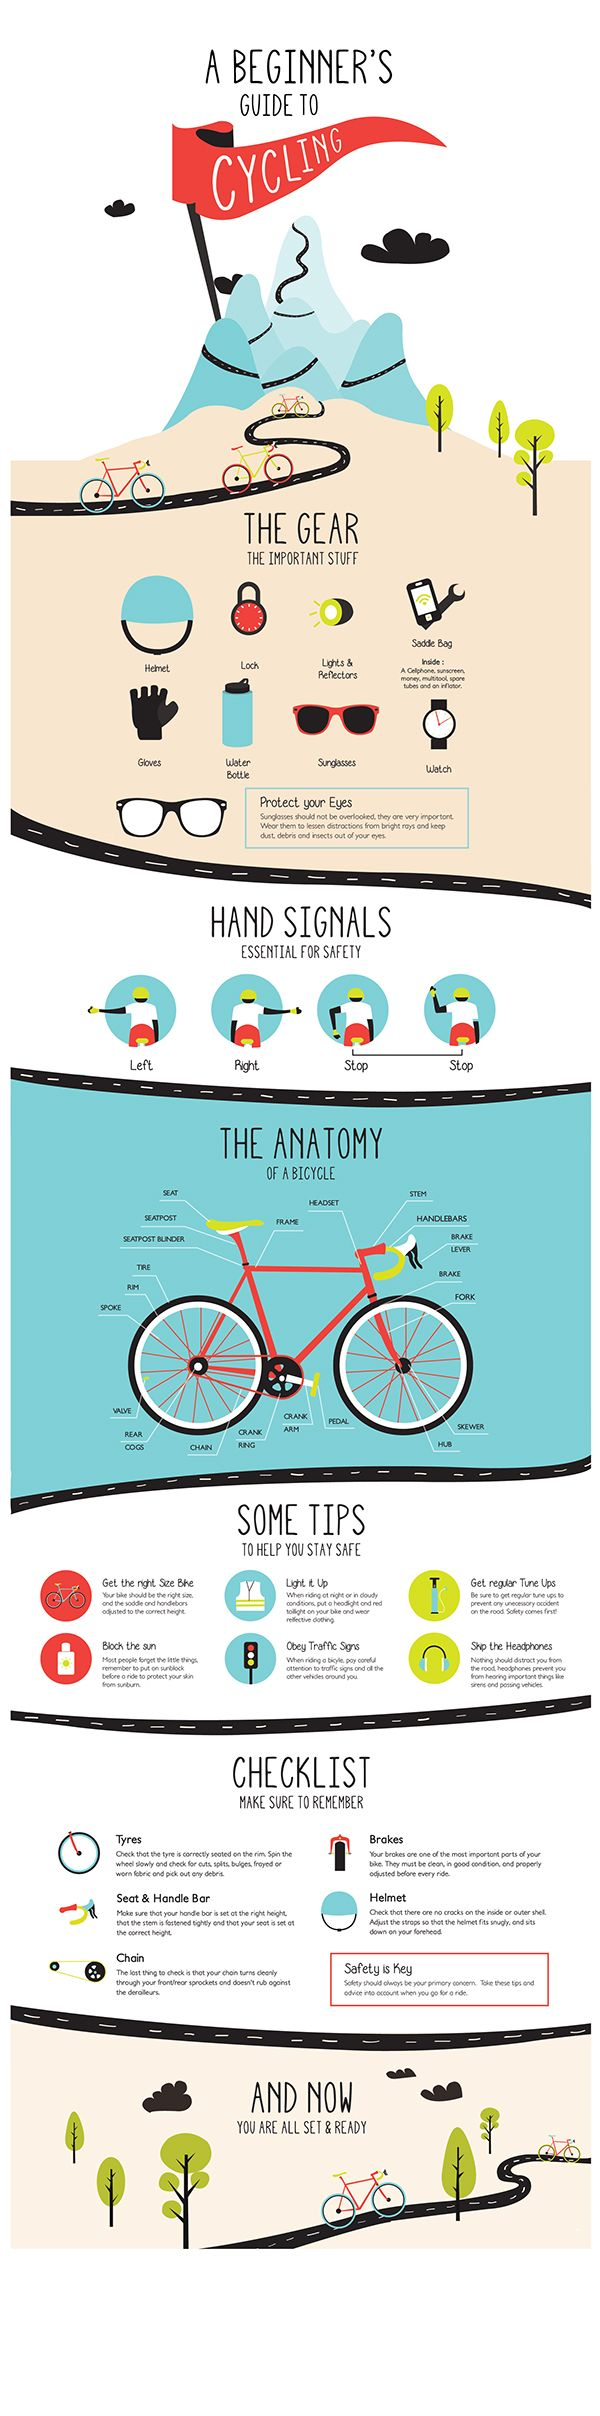 A beginner's guide to cycling is an infographic which aims to educate people who want to take up cycling, but don't have all the know how just yet.  It touches on the basics, like the gear, the road signs, safety tips and the bicycle anatomy.